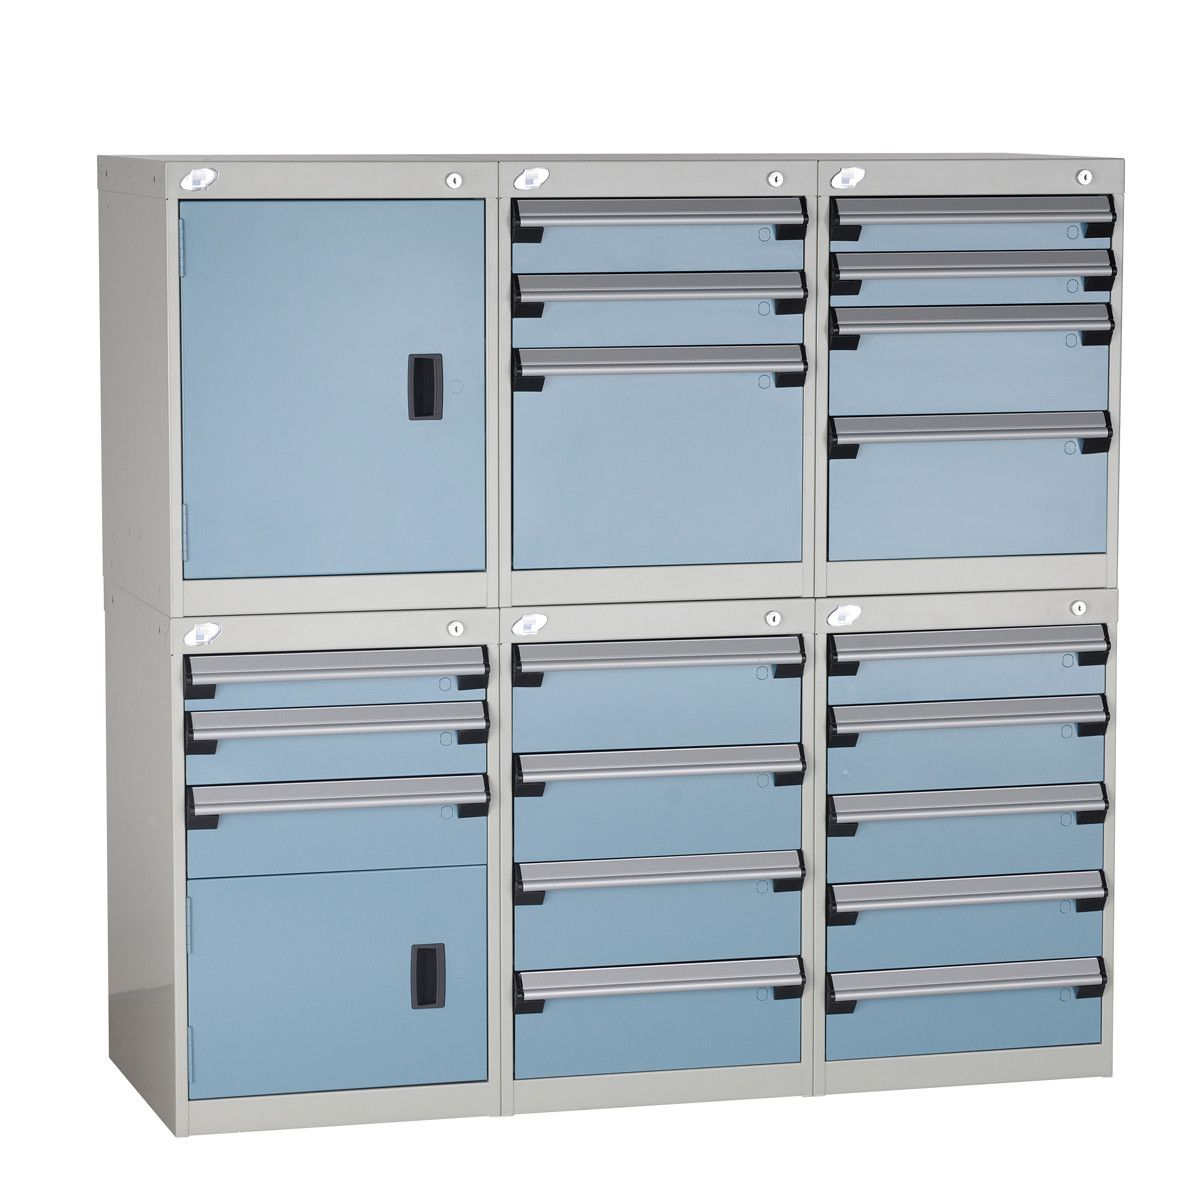 Cabinets / Drawer / Toolbox System Rousseau Metal   Drawer Cap. (lb.):100    No. Drawers: 19   Width (inches): 54   Height (inches): 52   Depth  (inches): 21 ...